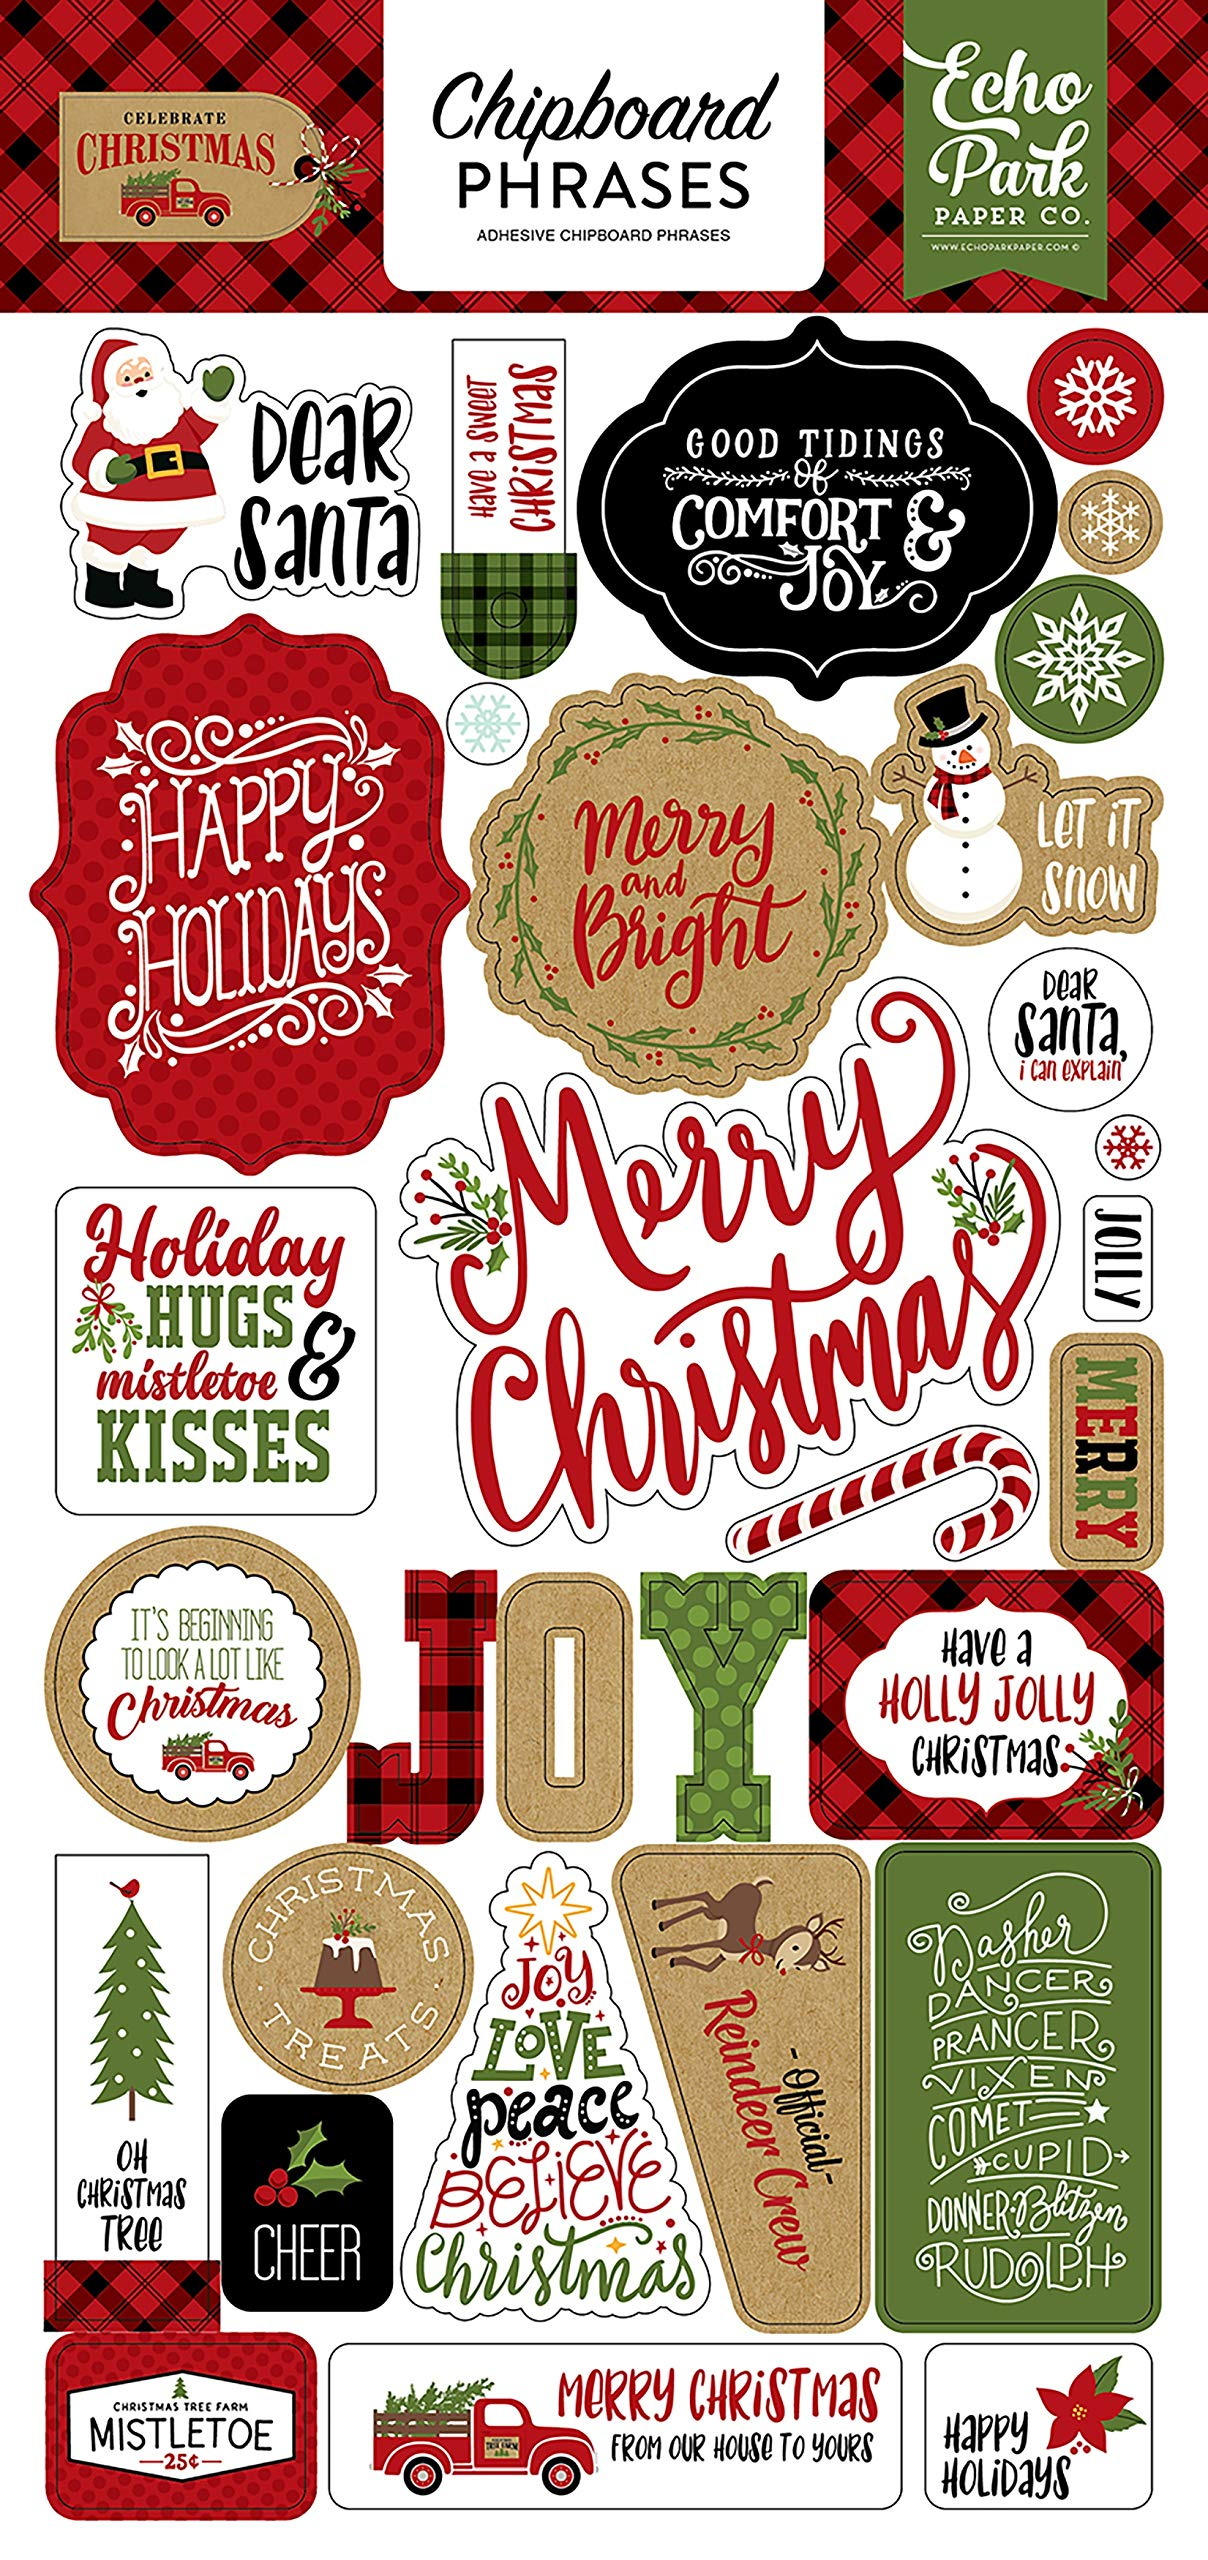 Echo Park Paper Company CCH159022 Celebrate Christmas 6x12 Chipboard Phrases Paper, Red/Green/Tan/Burlap/Black by Echo Park Paper Company (Image #1)